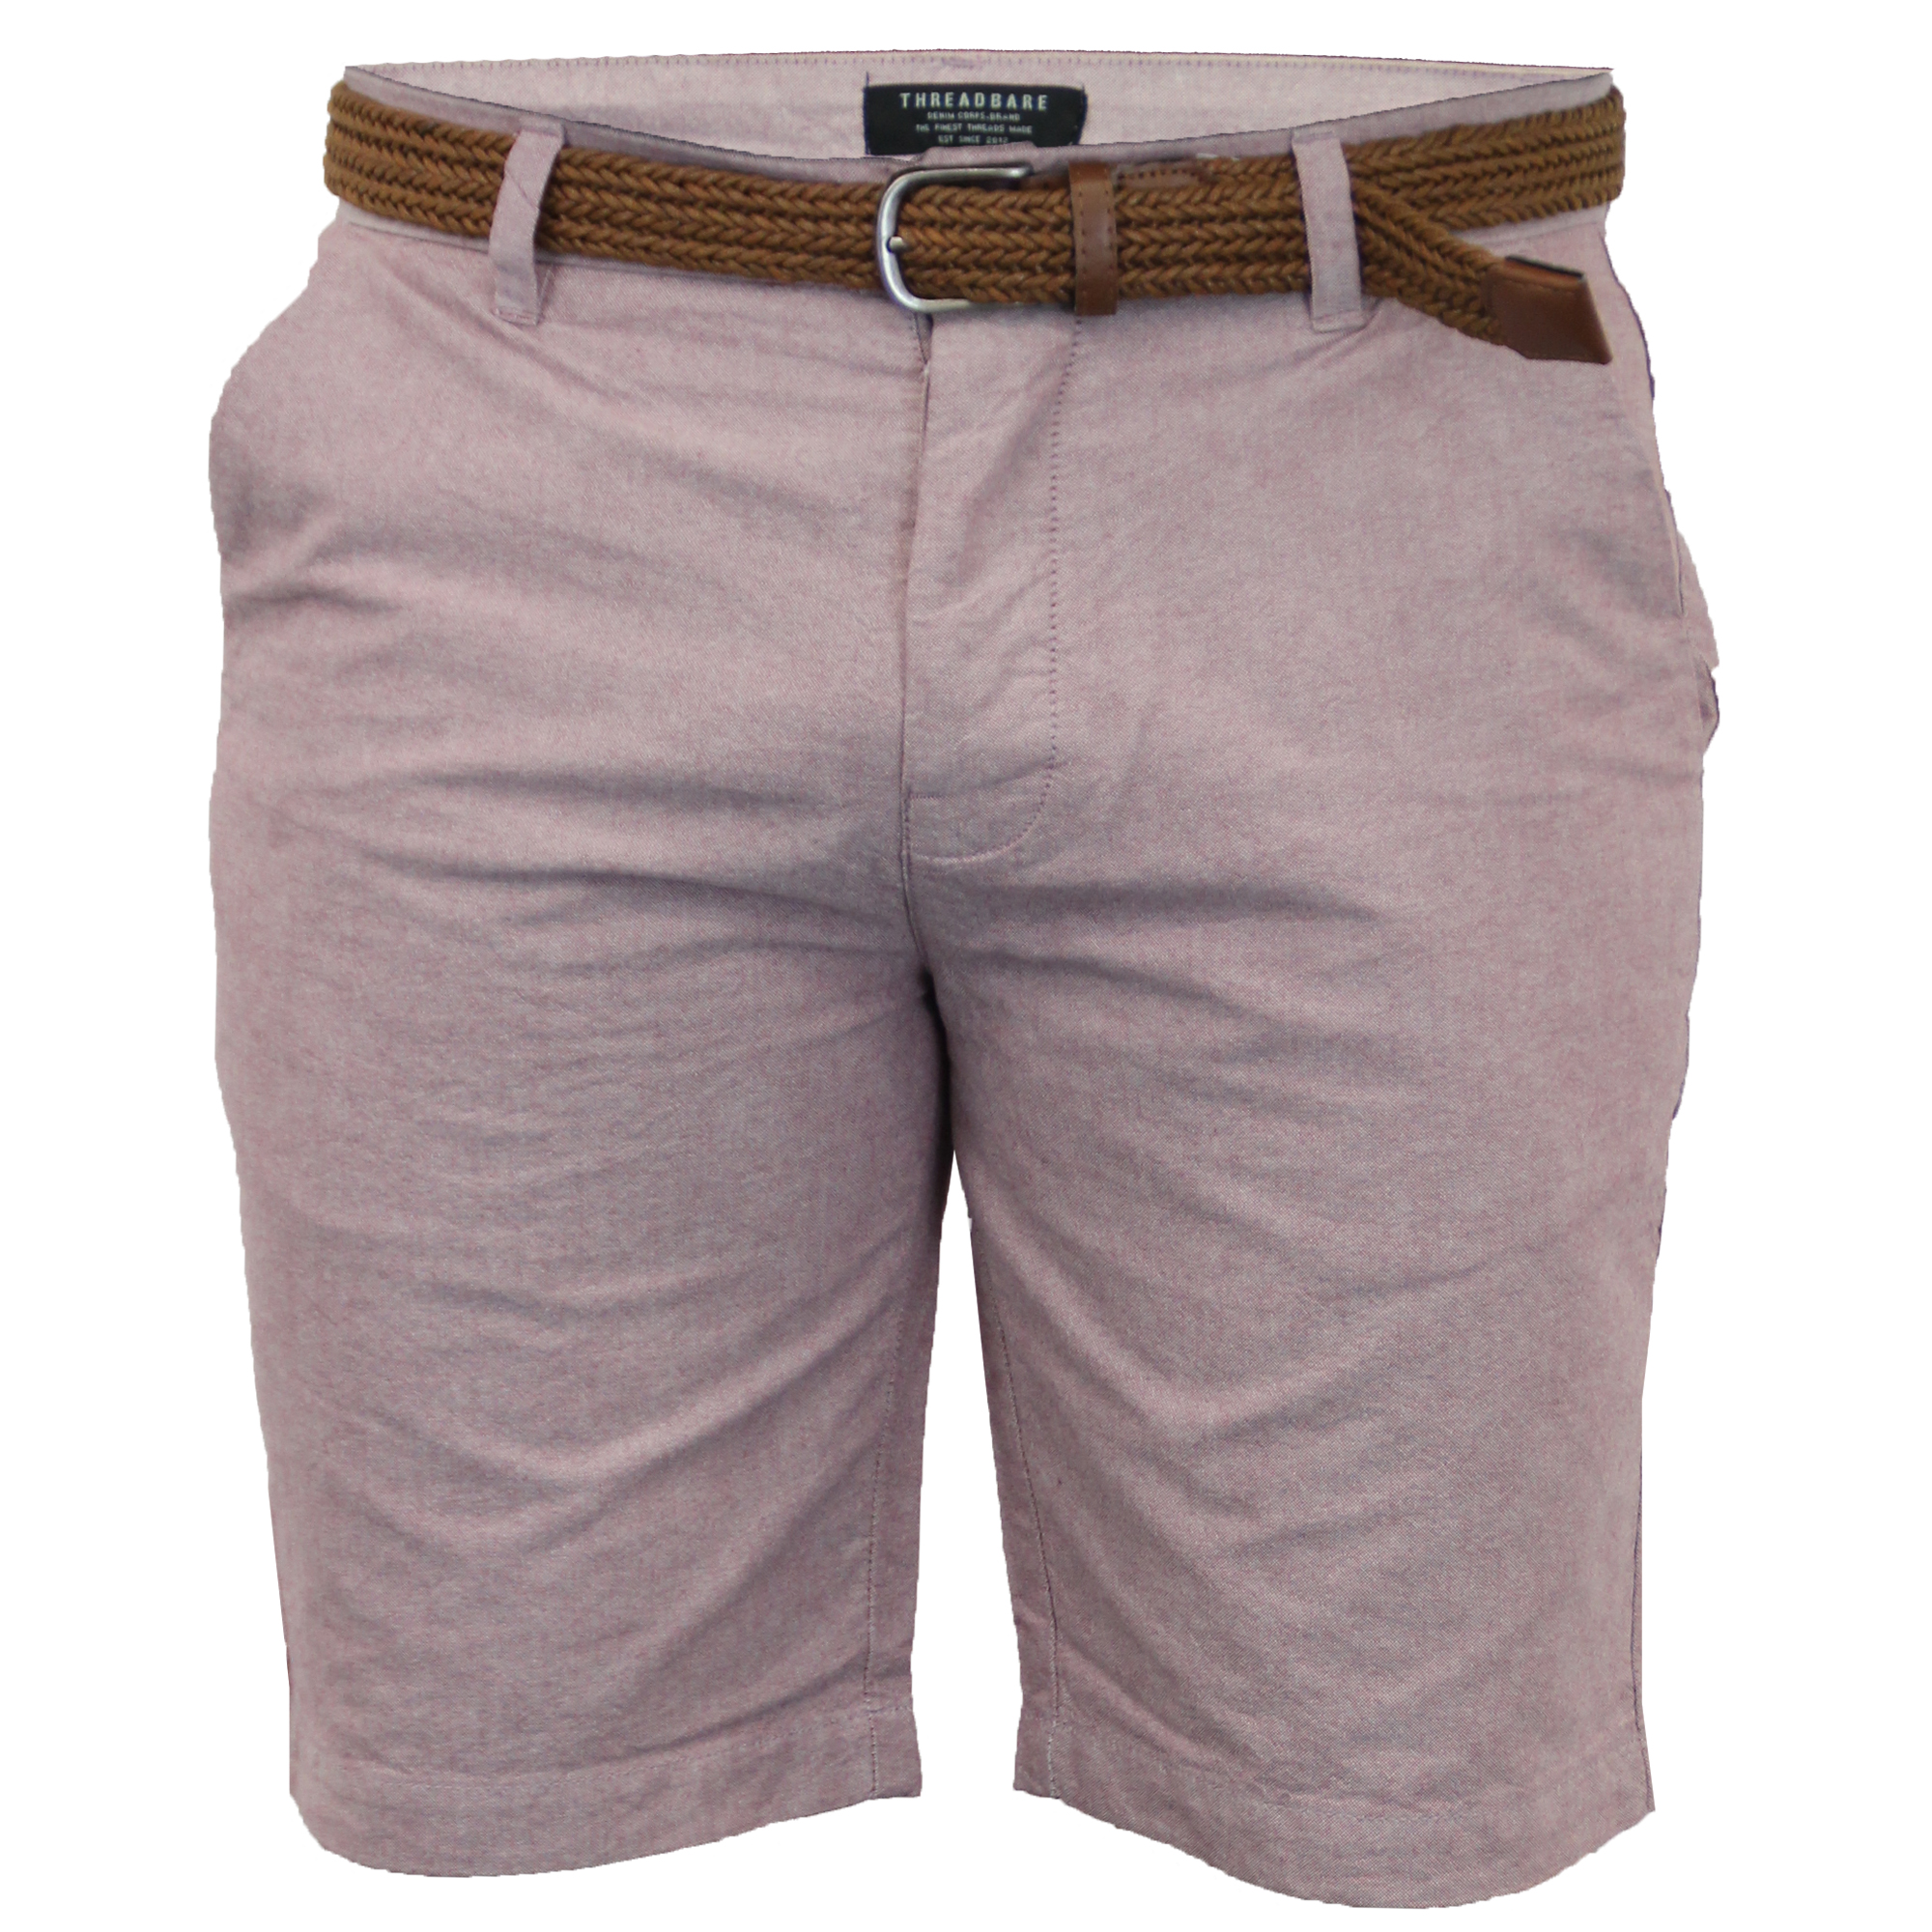 Mens-Chino-Shorts-Threadbare-Cotton-Oxford-Belted-Loyalty-amp-Faith-Seven-Series thumbnail 43